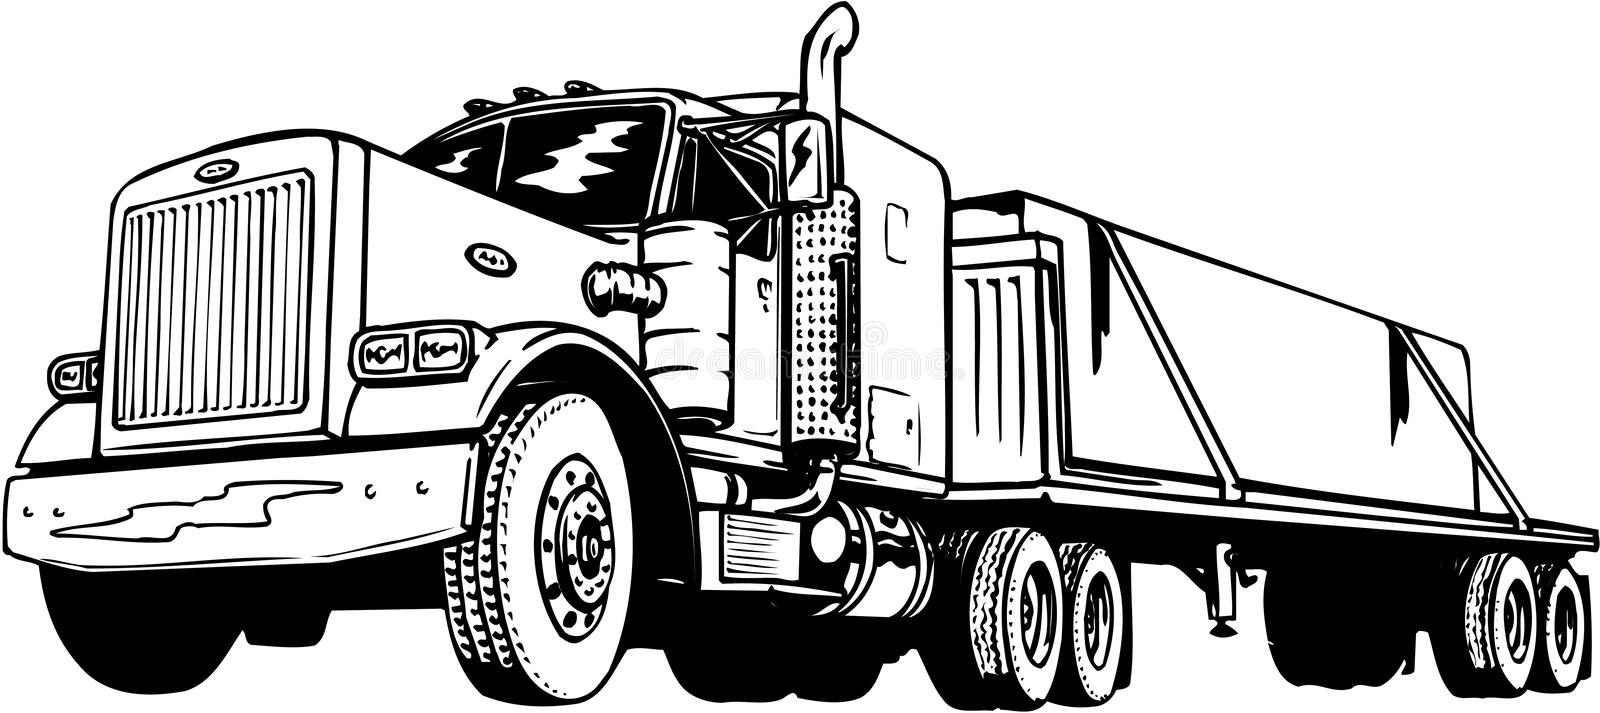 Flatbed Tractor Trailer Illustration. A vector illustration of a flatbed tractor trailer stock illustration